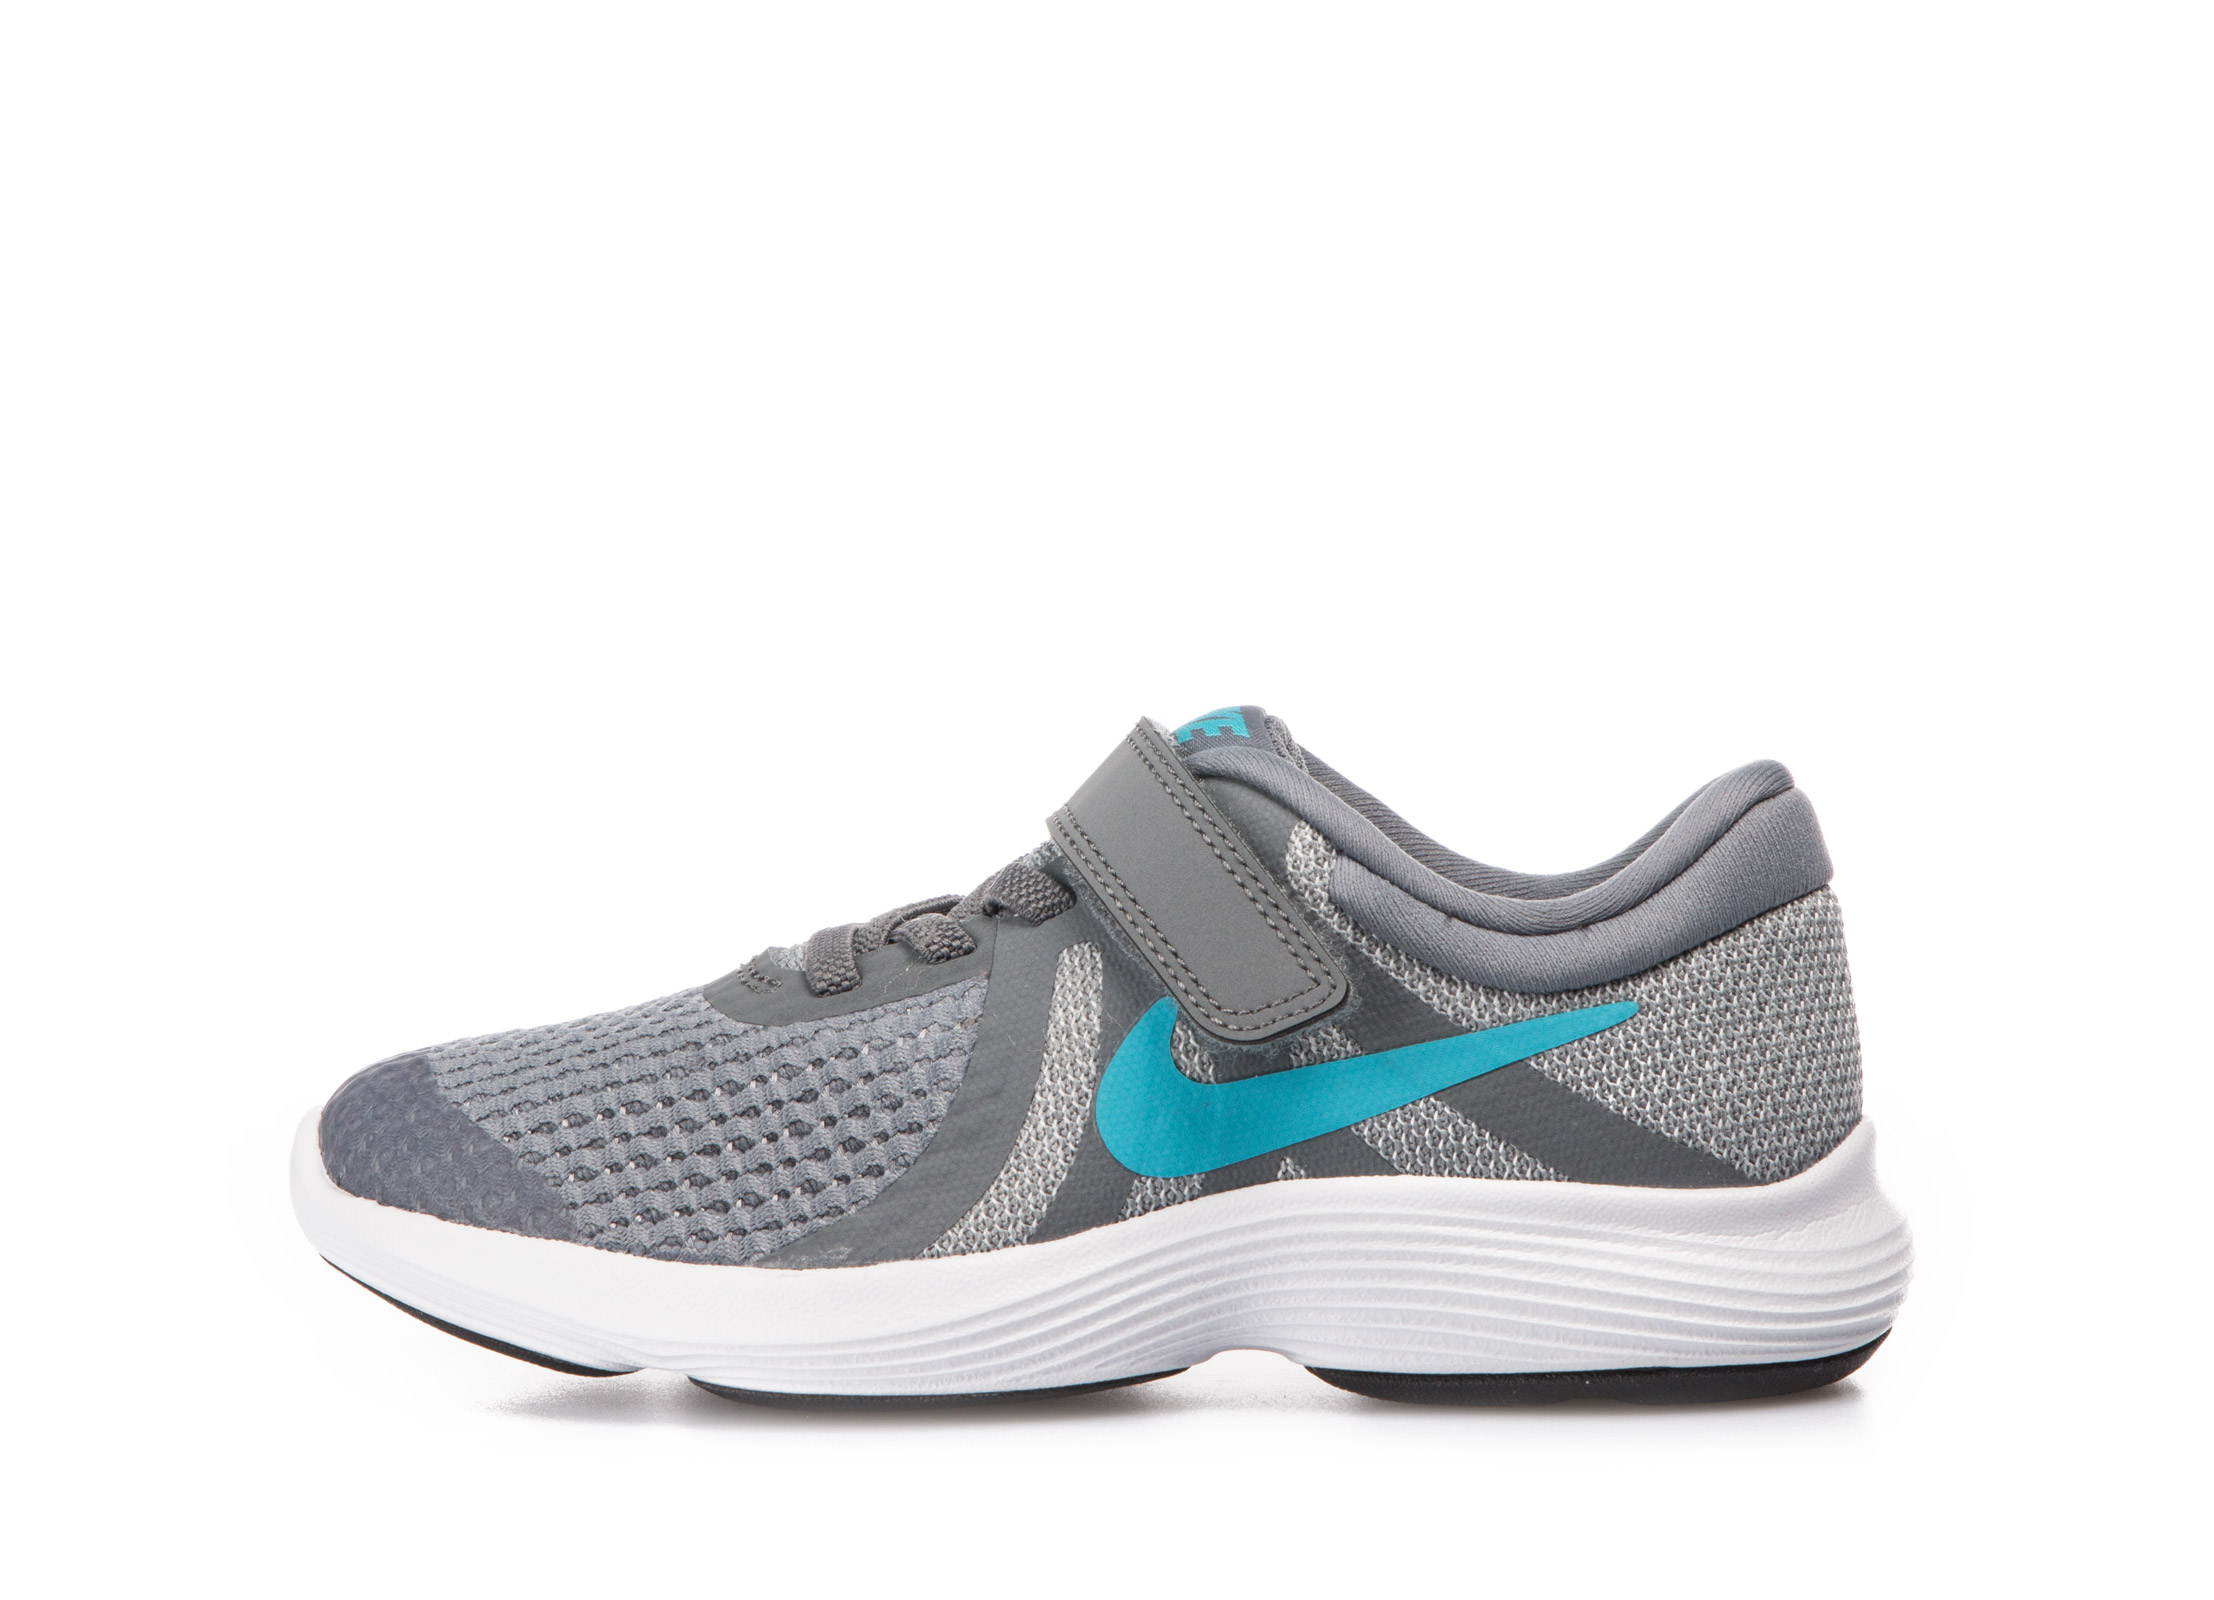 NIKE REVOLUTION 4 (PS) 943305-014 Ανθρακί